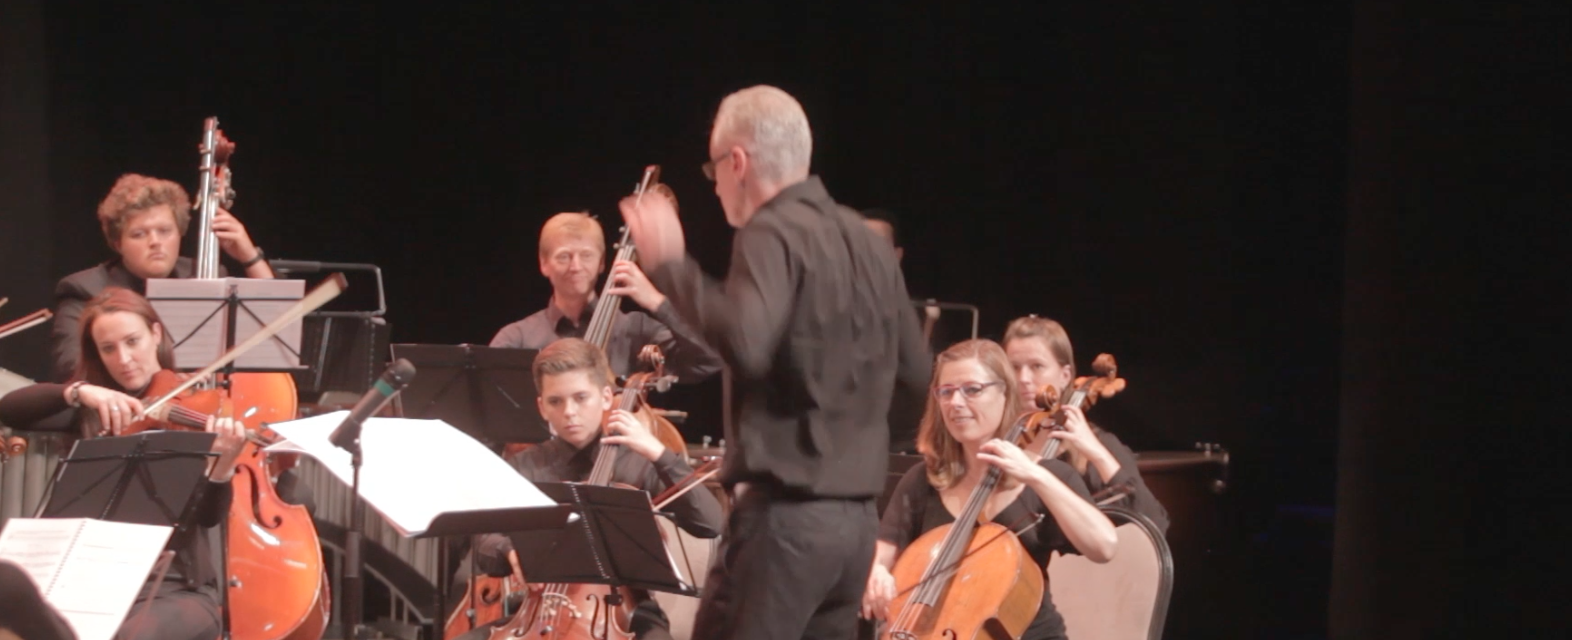 Orchestra Live hits the high notes